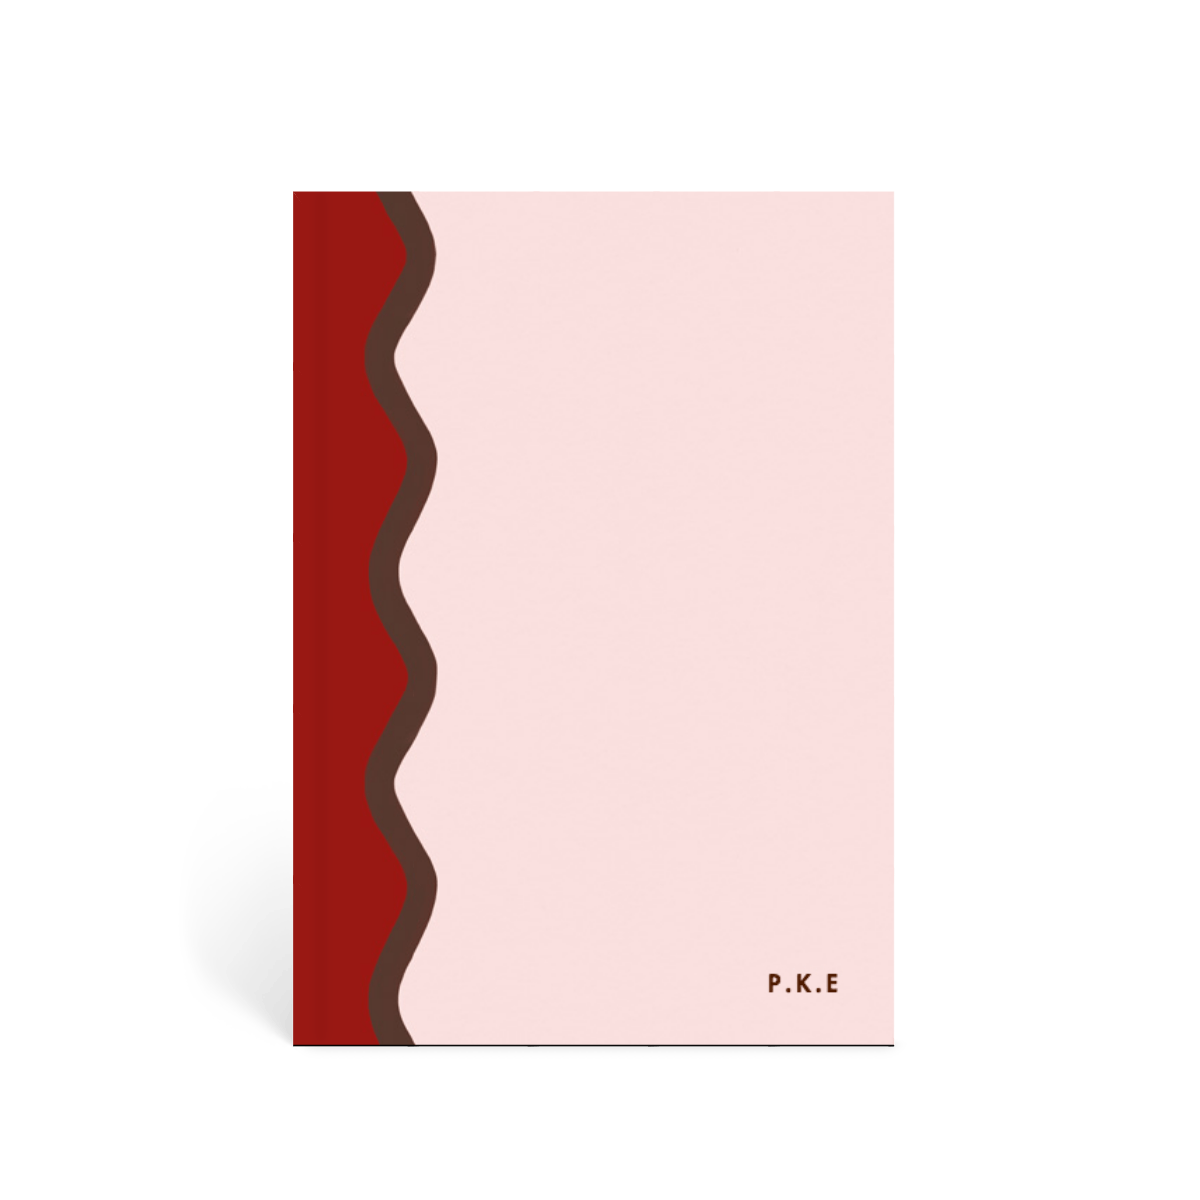 Https%3a%2f%2fwww.papier.com%2fproduct image%2f75565%2f25%2fscallop spine 17718 front 1557496459.png?ixlib=rb 1.1